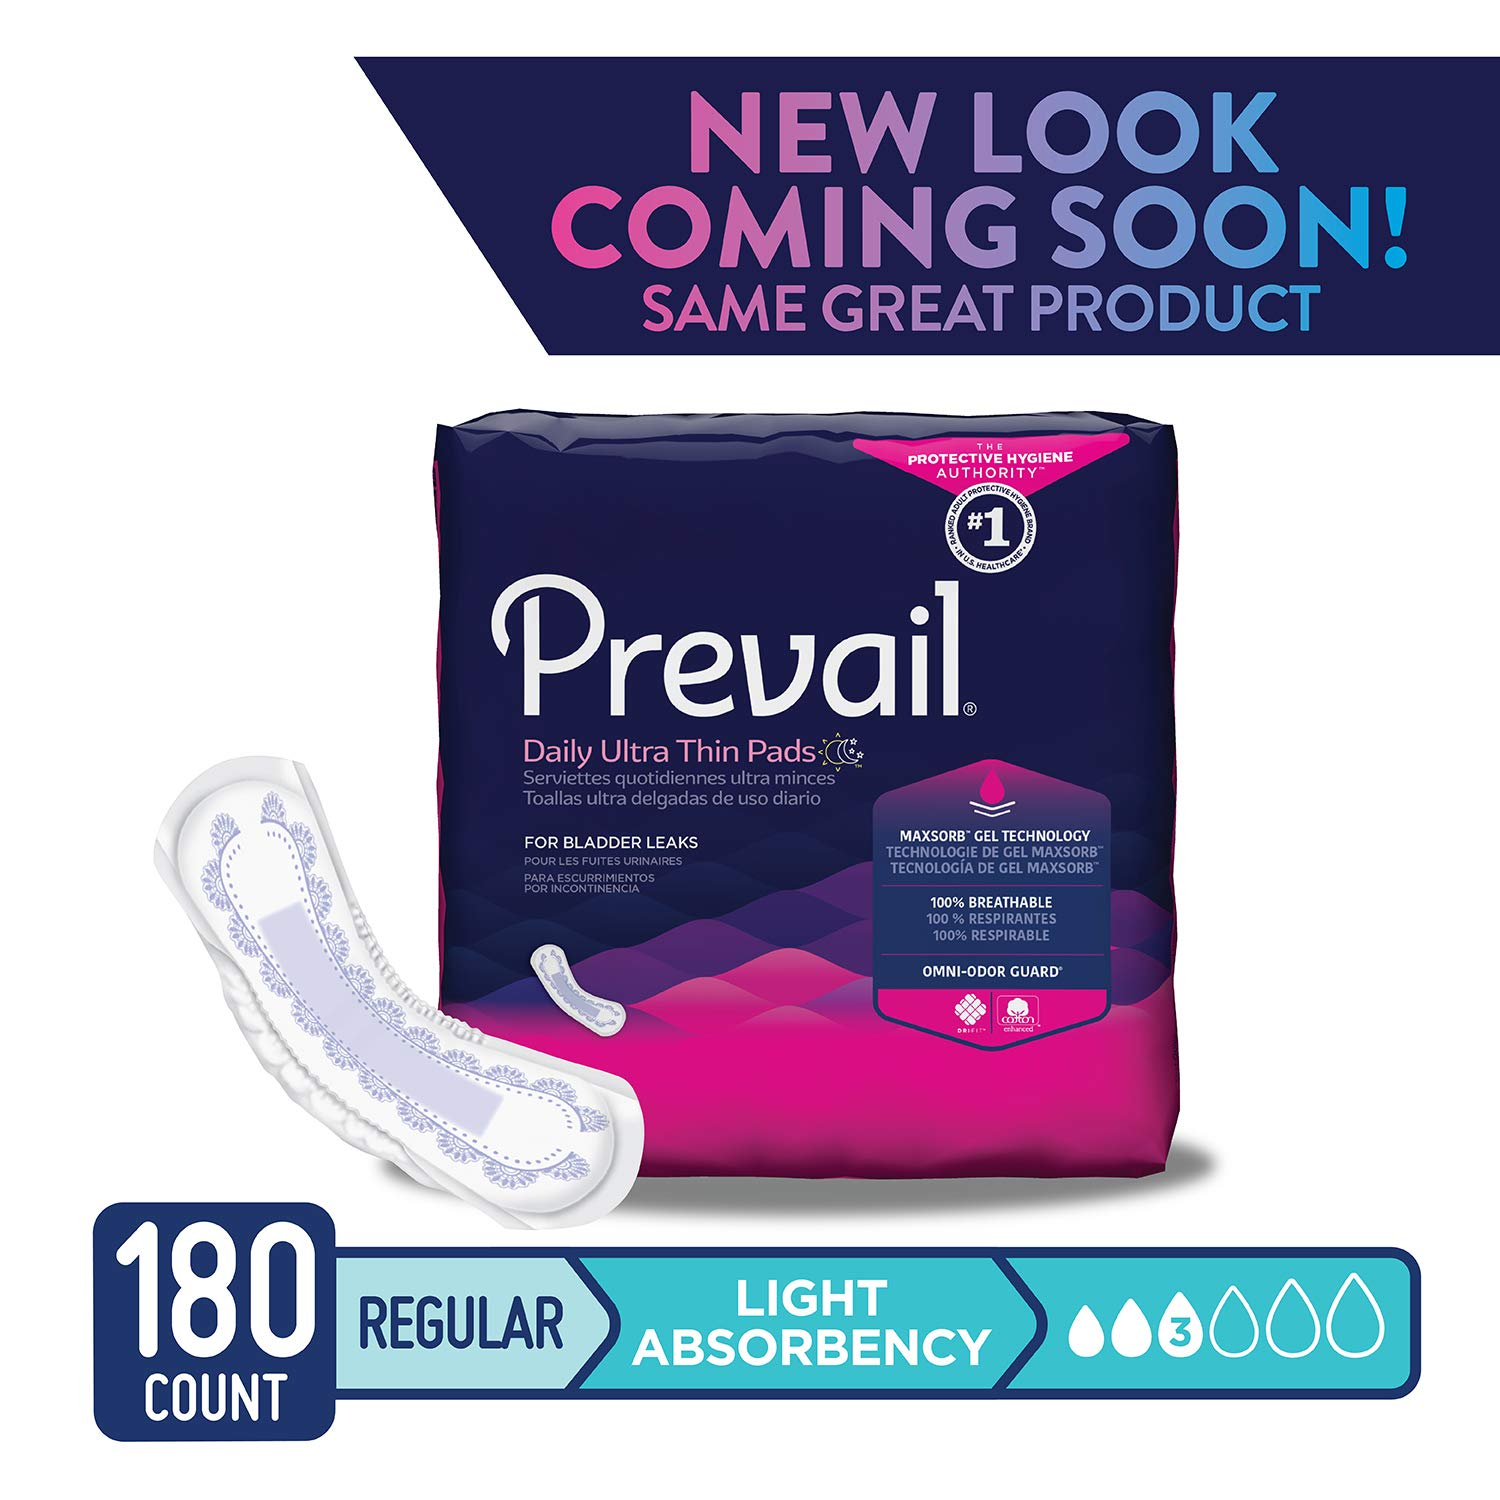 Amazon.com: Prevail Moderate Absorbency Incontinence Bladder Control Pads, Long, 54-Count: Health & Personal Care